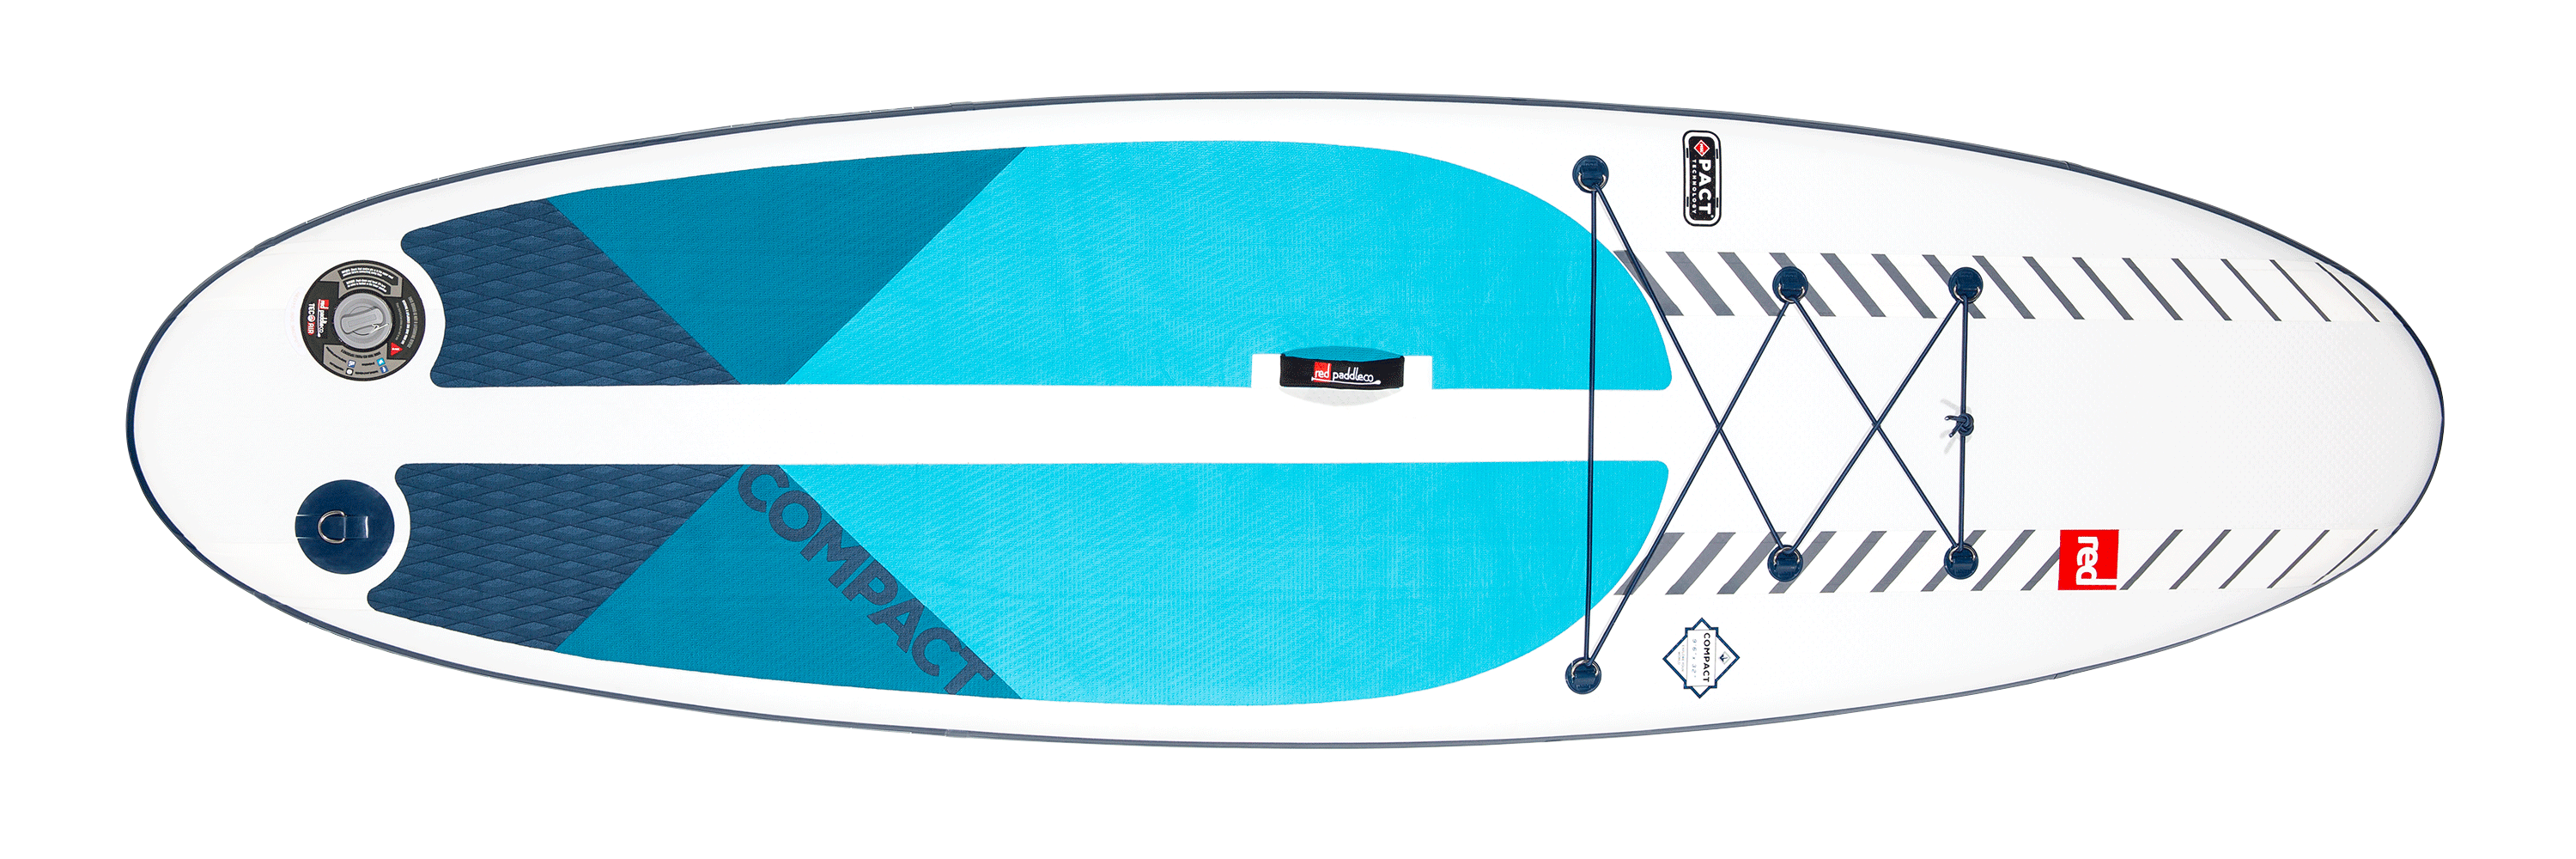 Red Paddle Co Compact MSL PACT SUP 9.6 x 32